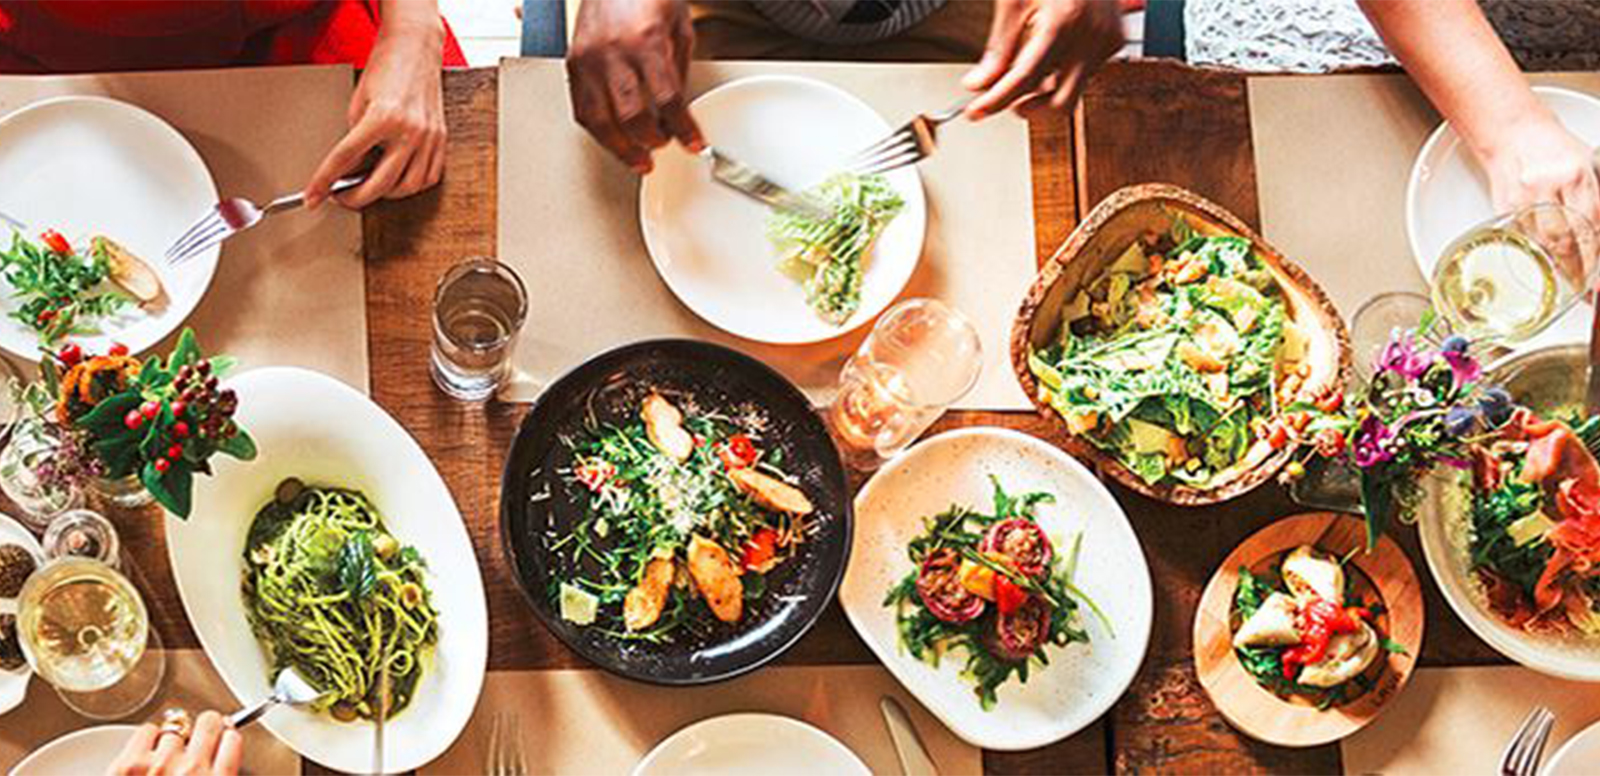 Dine, in partnership with Three, to give operators access to 2 million diners per month